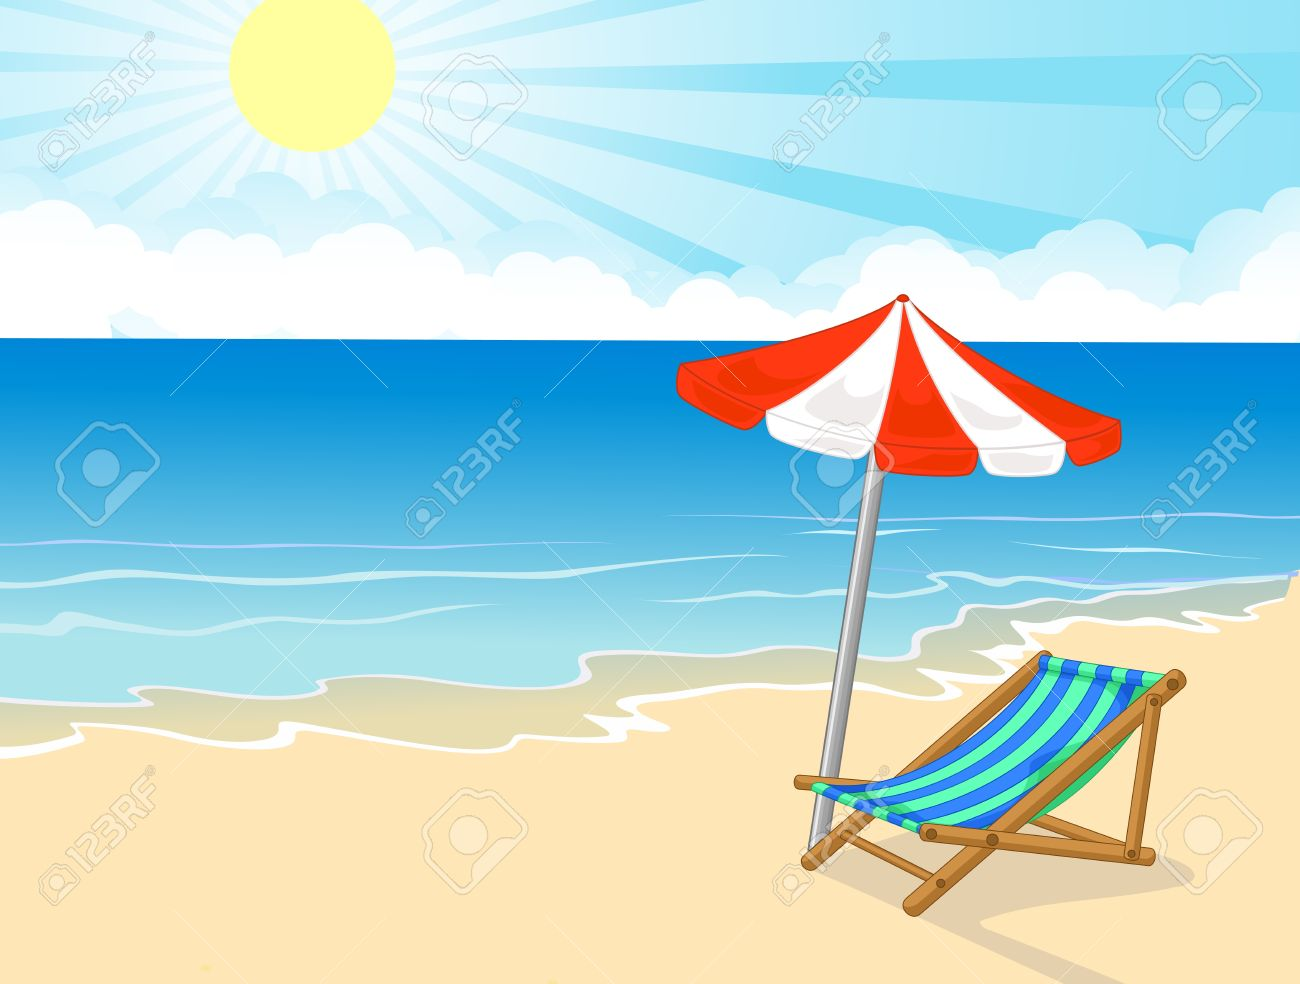 Cartoon beach chair and umbrella on tropical beach royalty free cartoon beach chair and umbrella on tropical beach stock vector 27649031 voltagebd Gallery